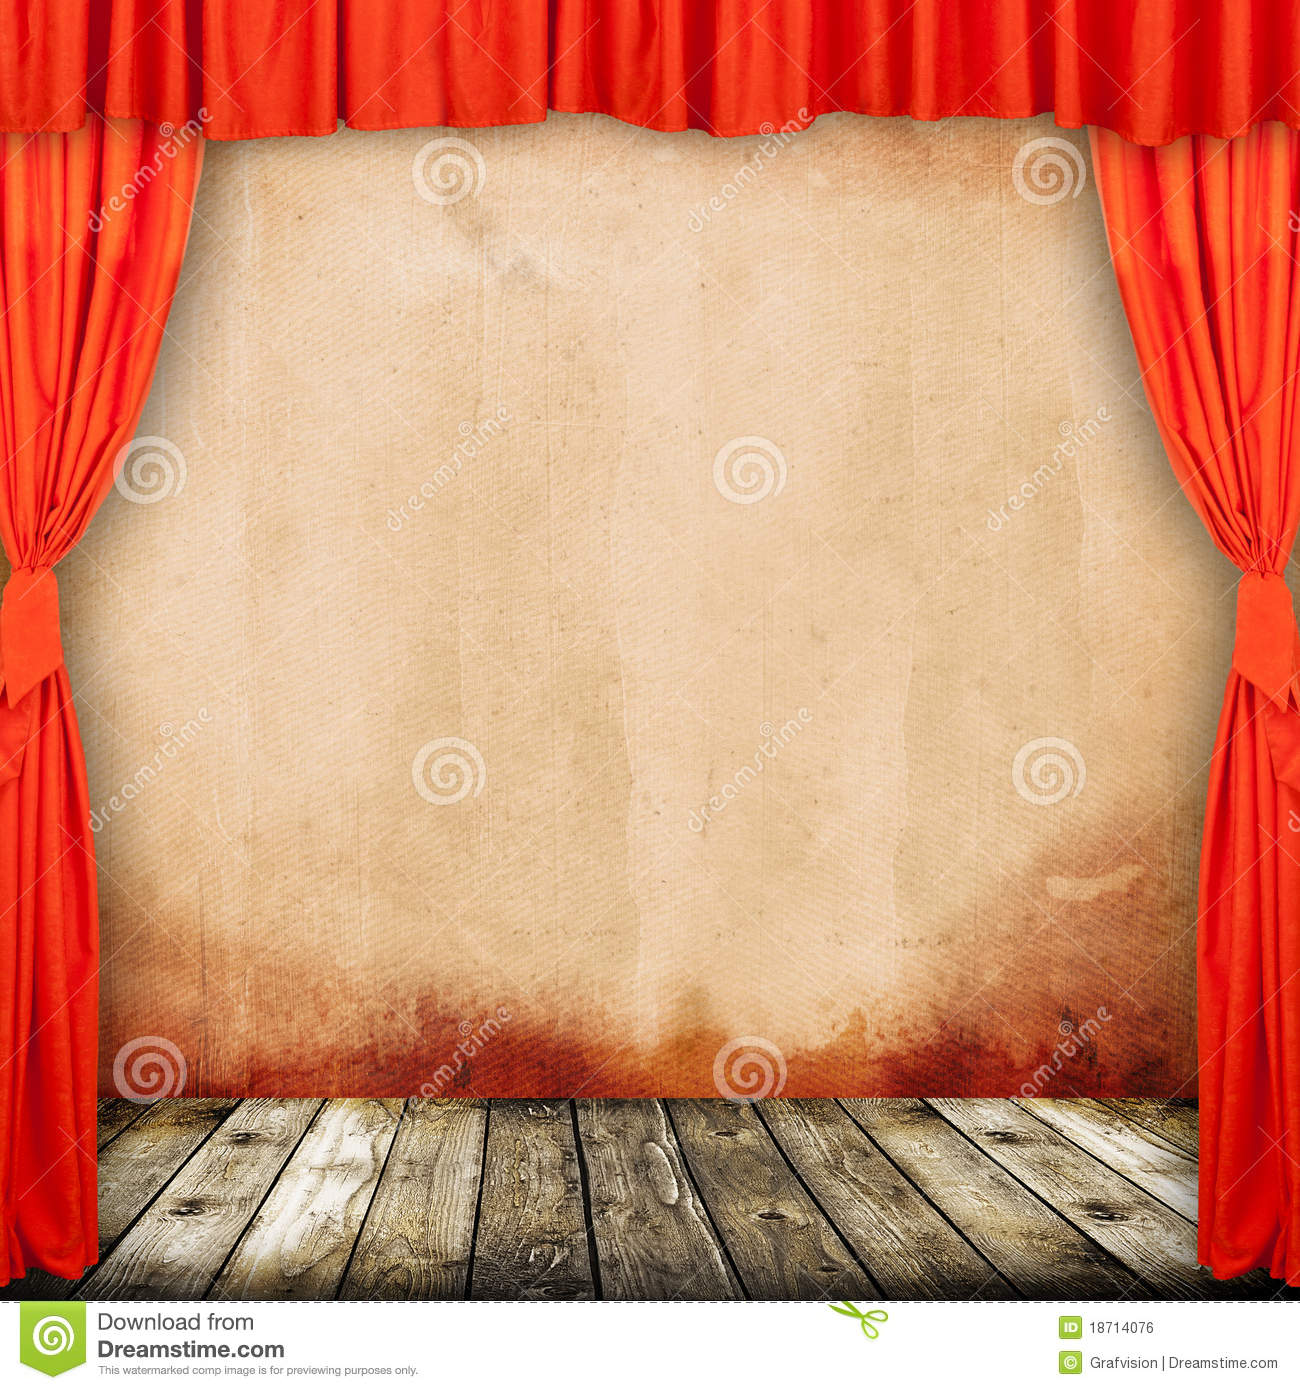 Old provincial theater stock photo. Image of decor, entertainment ...